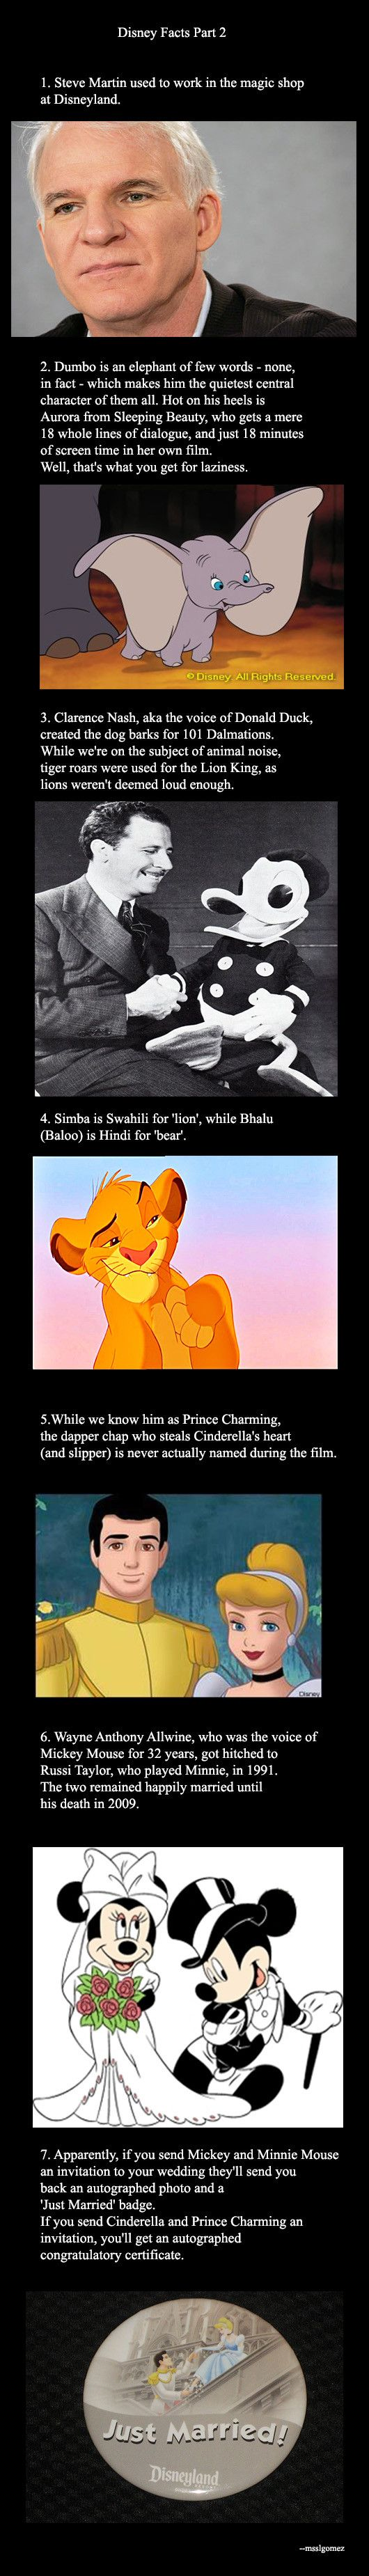 Disney Facts Part 2... pinning for the last one, guess who just became wedding guests at my future wedding, u know when it finally happens!